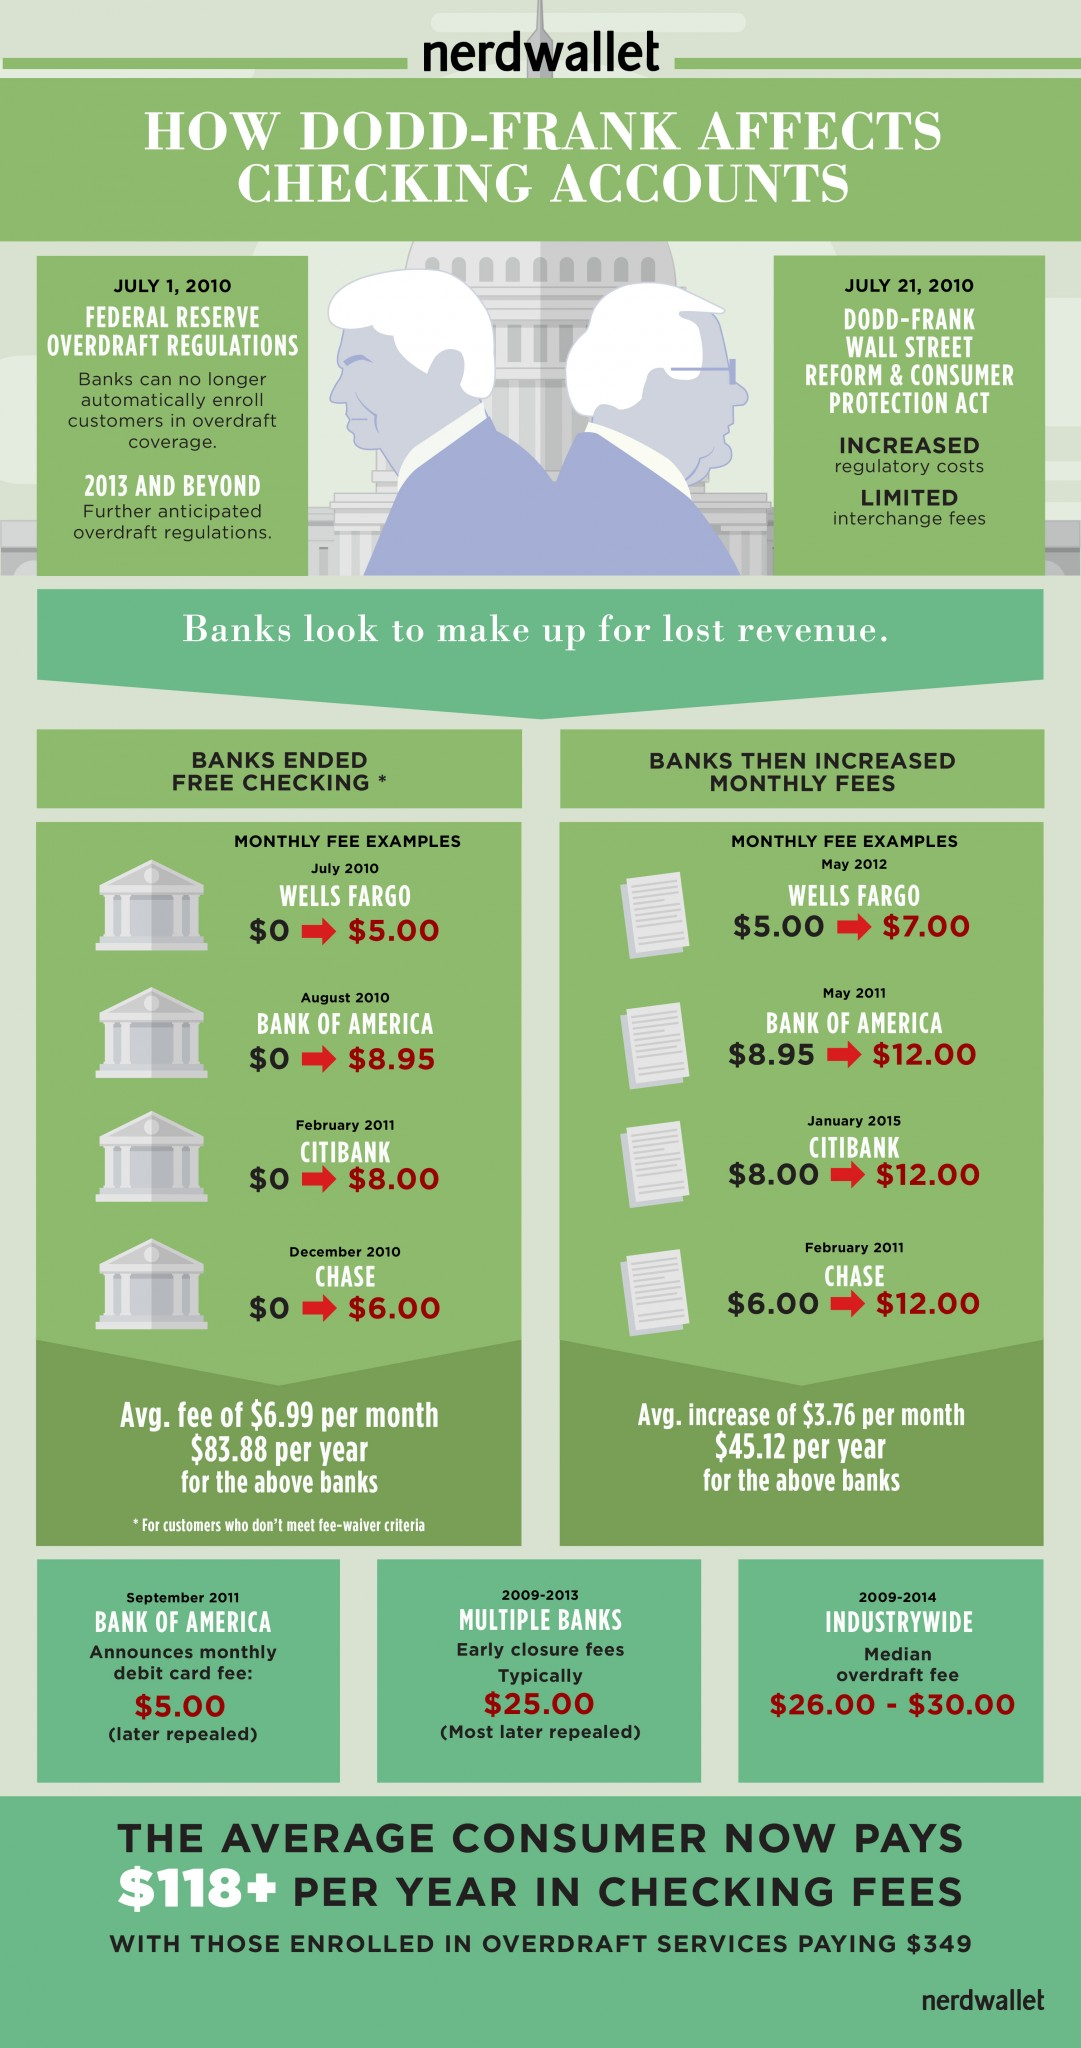 How Dodd-Frank Affects Checking Accounts